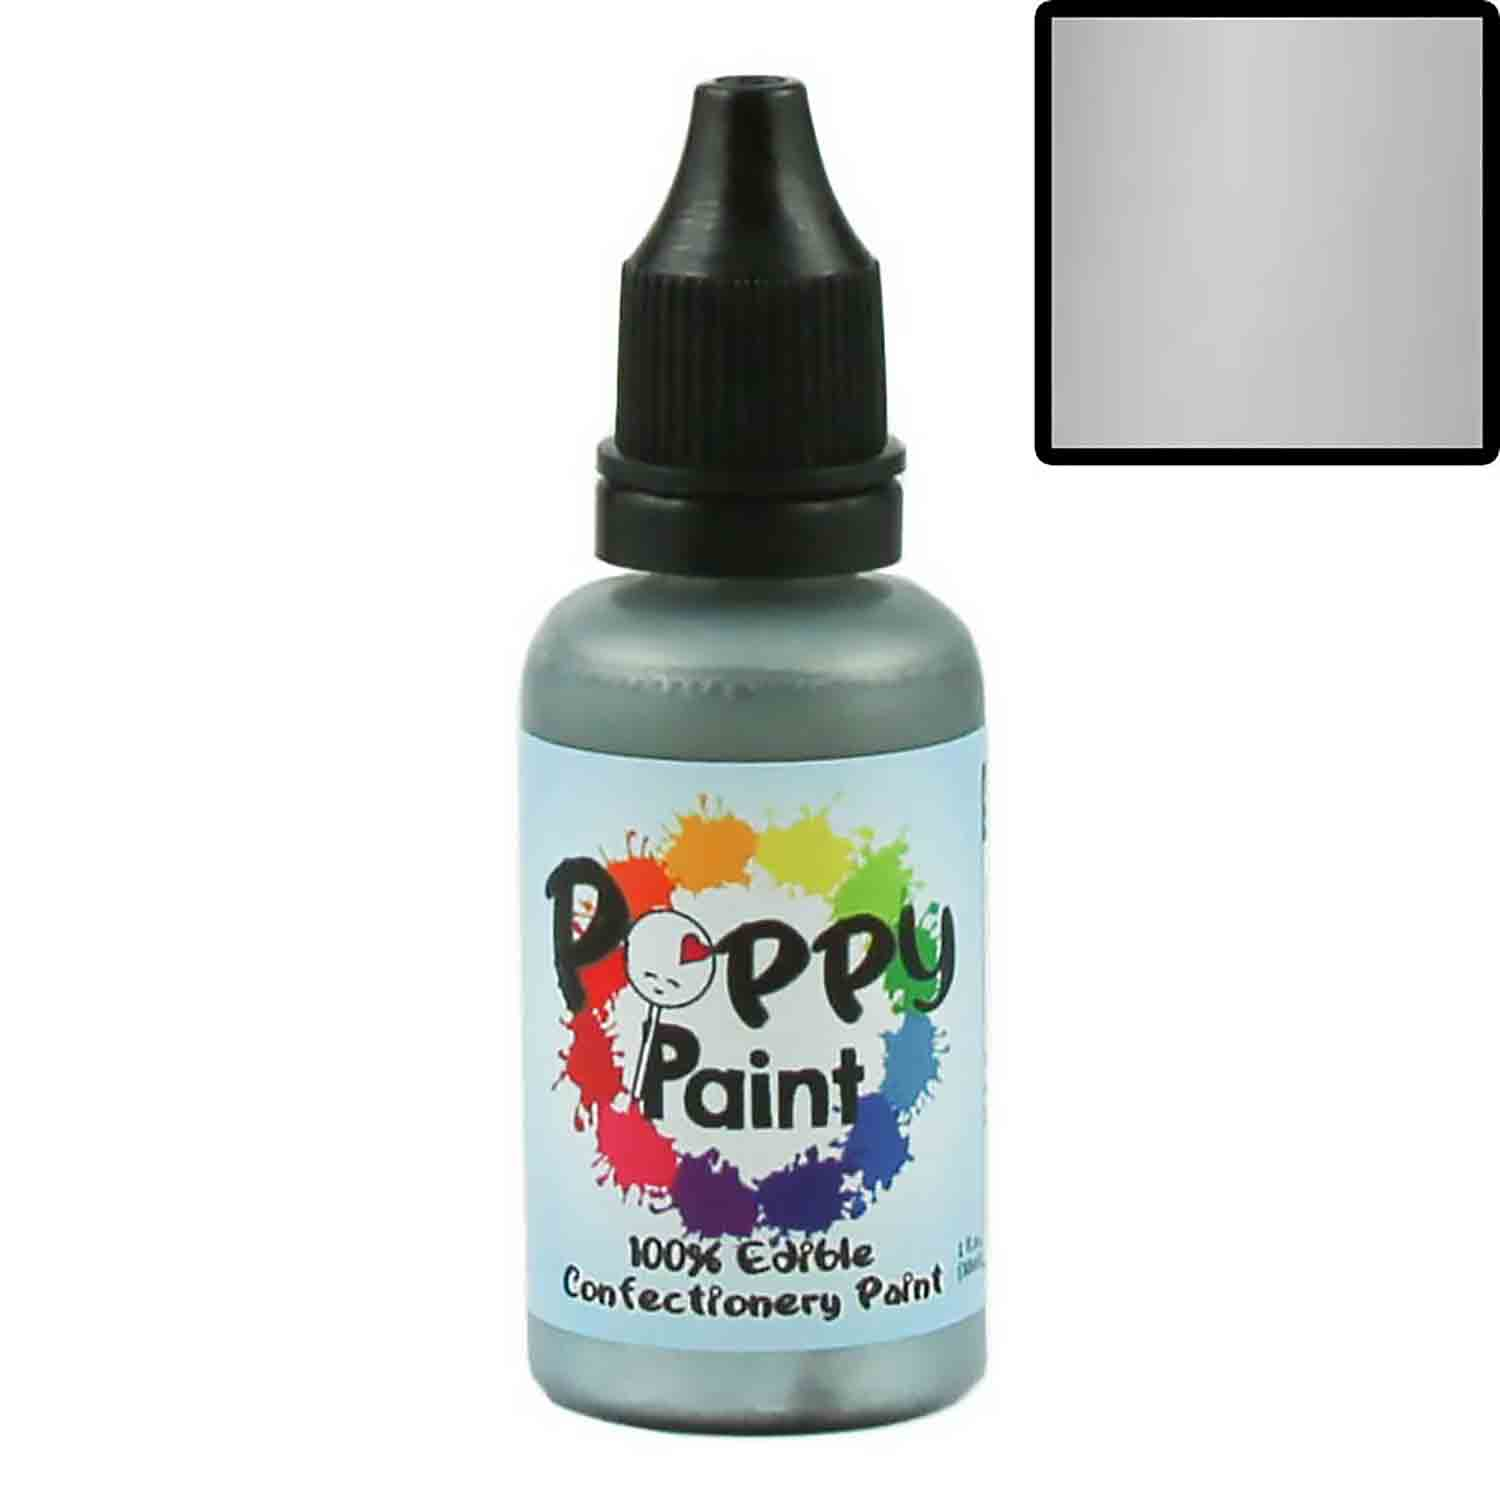 Silver Pearlescent Poppy Paint 100% Edible Confectionery Paint